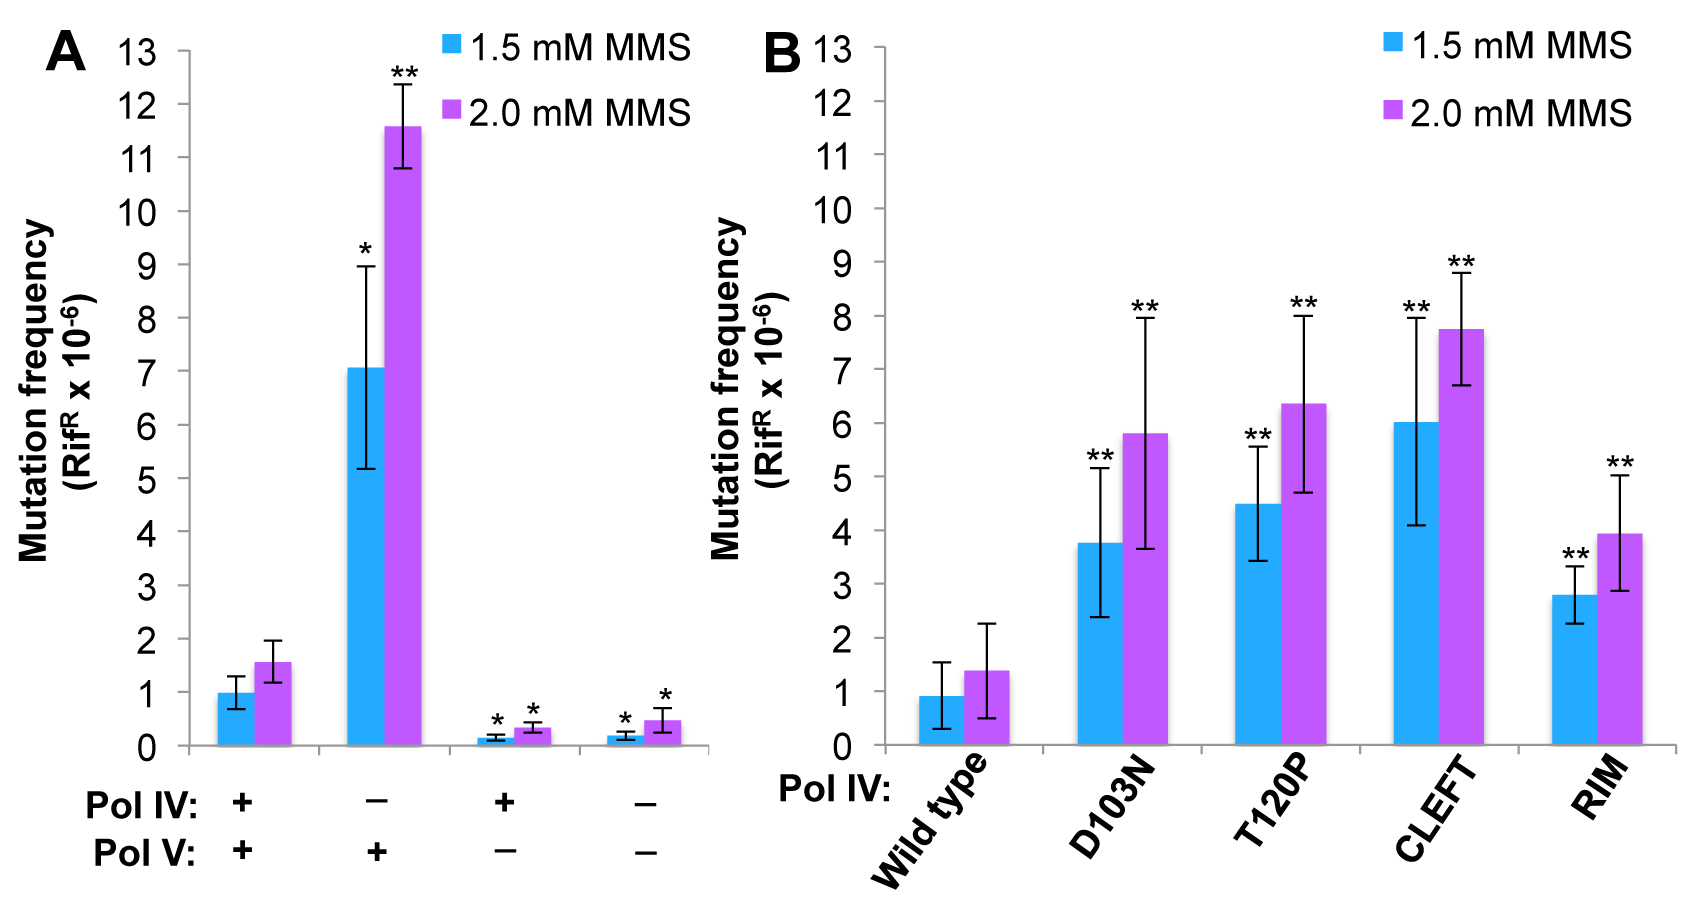 The Pol IV-T120P, Pol IV<sup>C</sup> and Pol IV<sup>R</sup> strains display an increased frequency of MMS-induced mutagenesis.